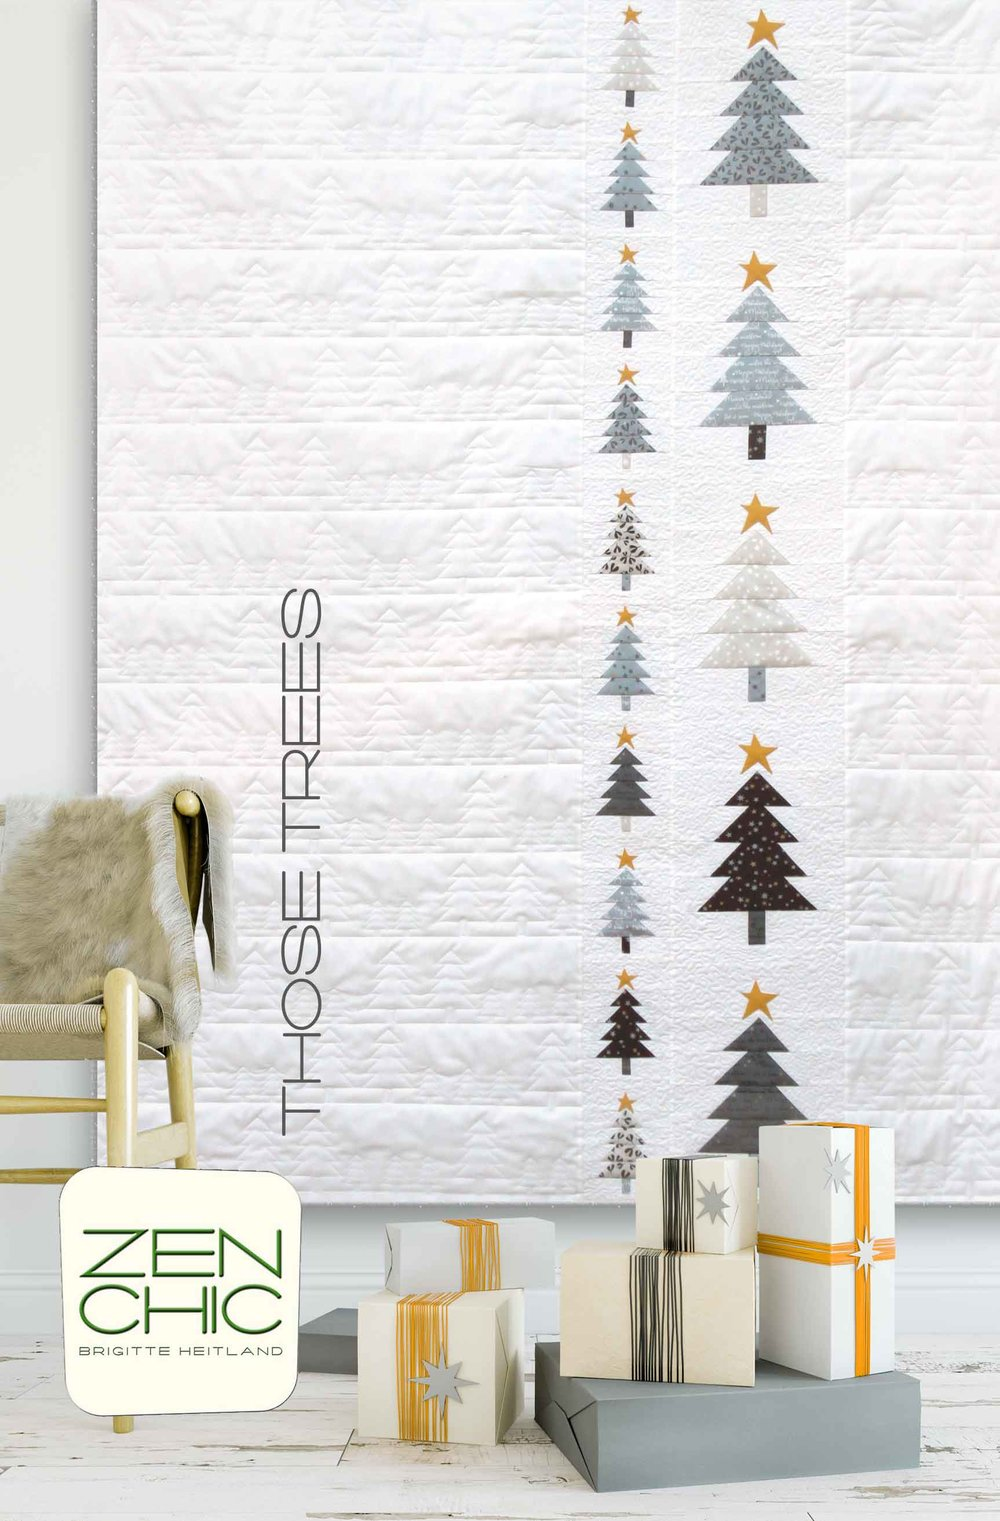 Christmas Quilt Those Trees by Zen Chic is a modern and minimalist take on an holiday quilt beyond reds and greens.